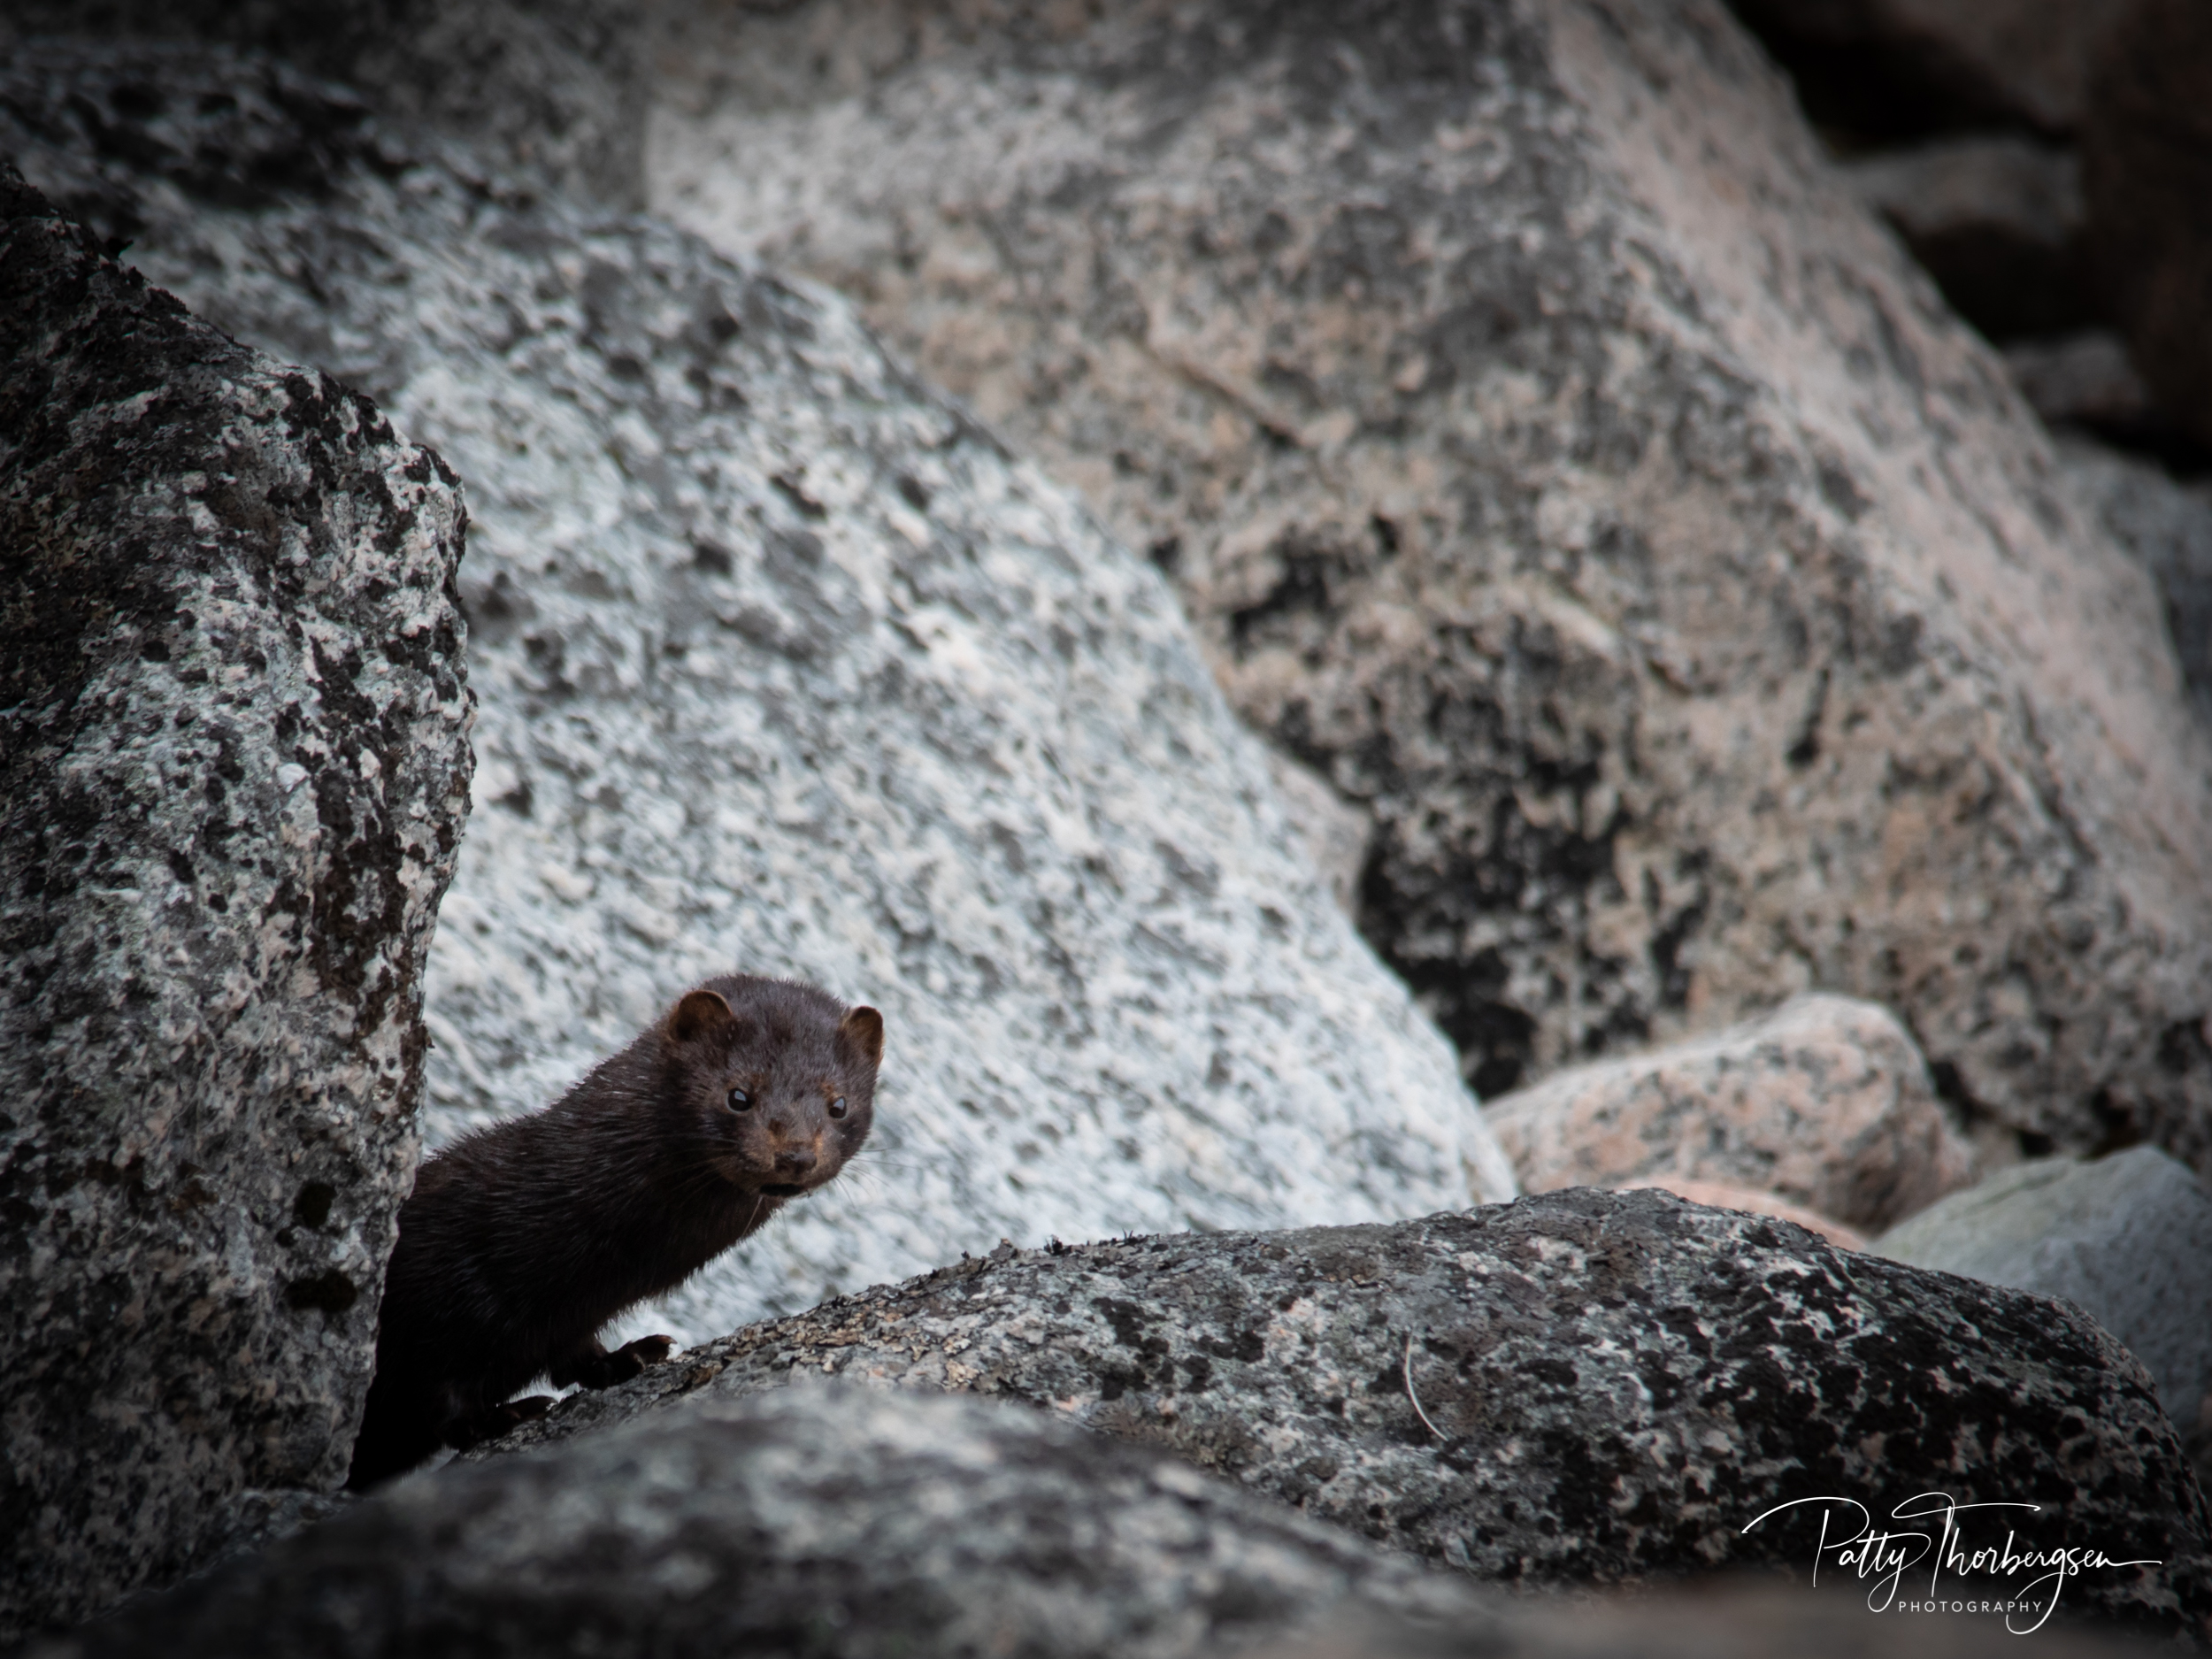 mink © Patty Thorbergsen-8867.jpg